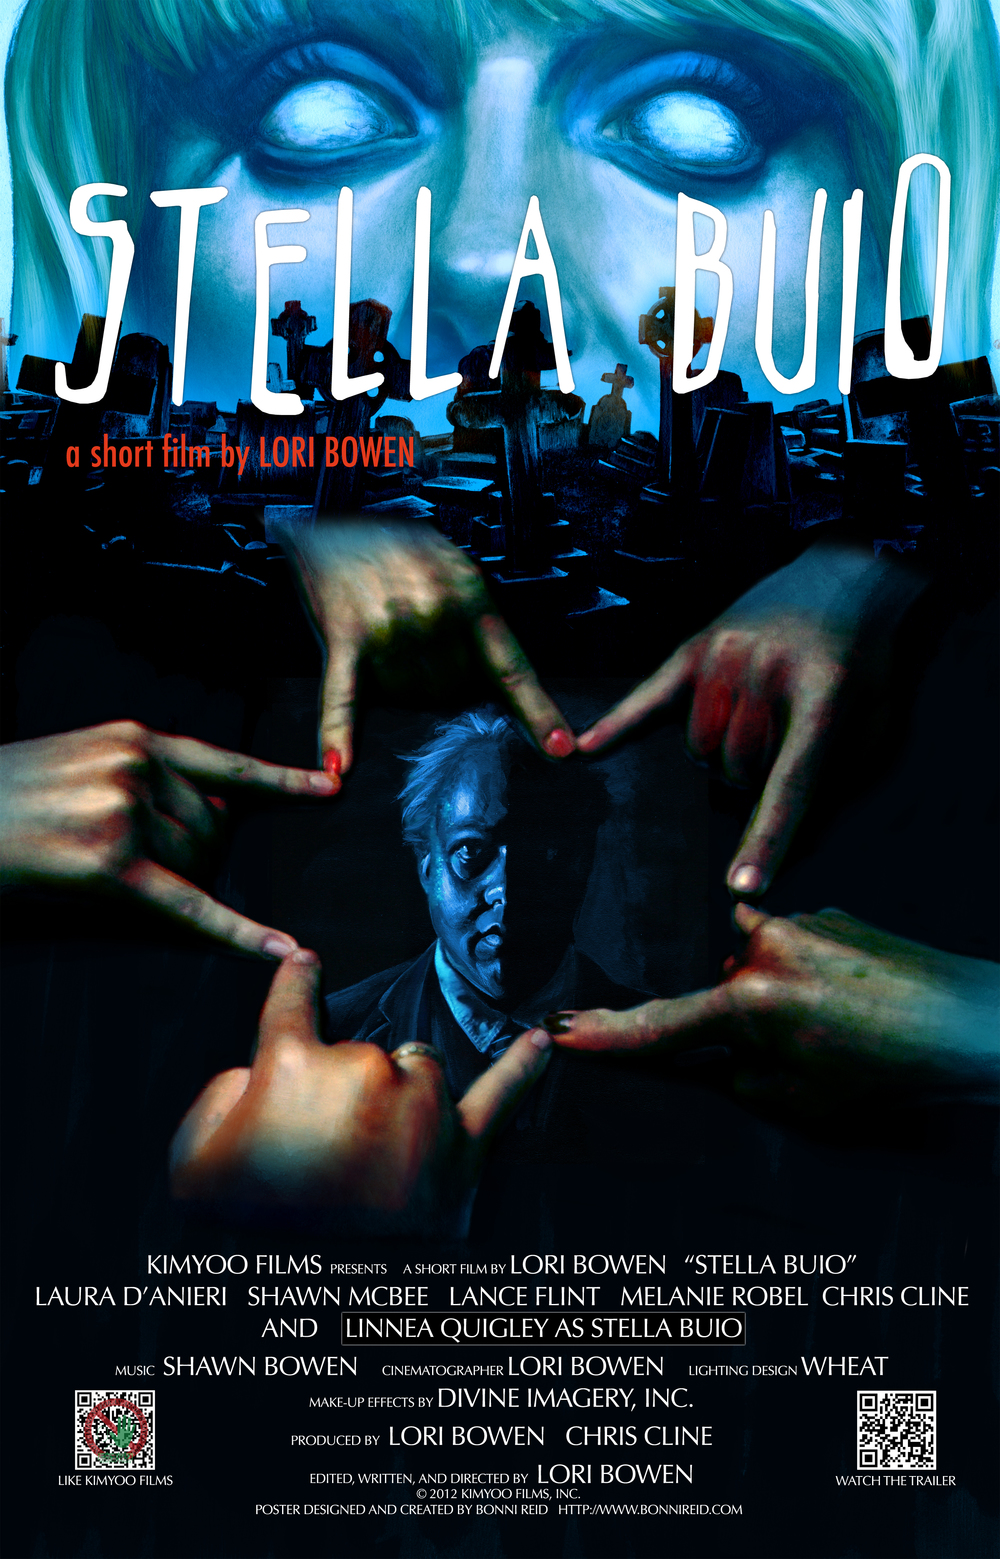 Stella Buio written and directed by Lori Bowen